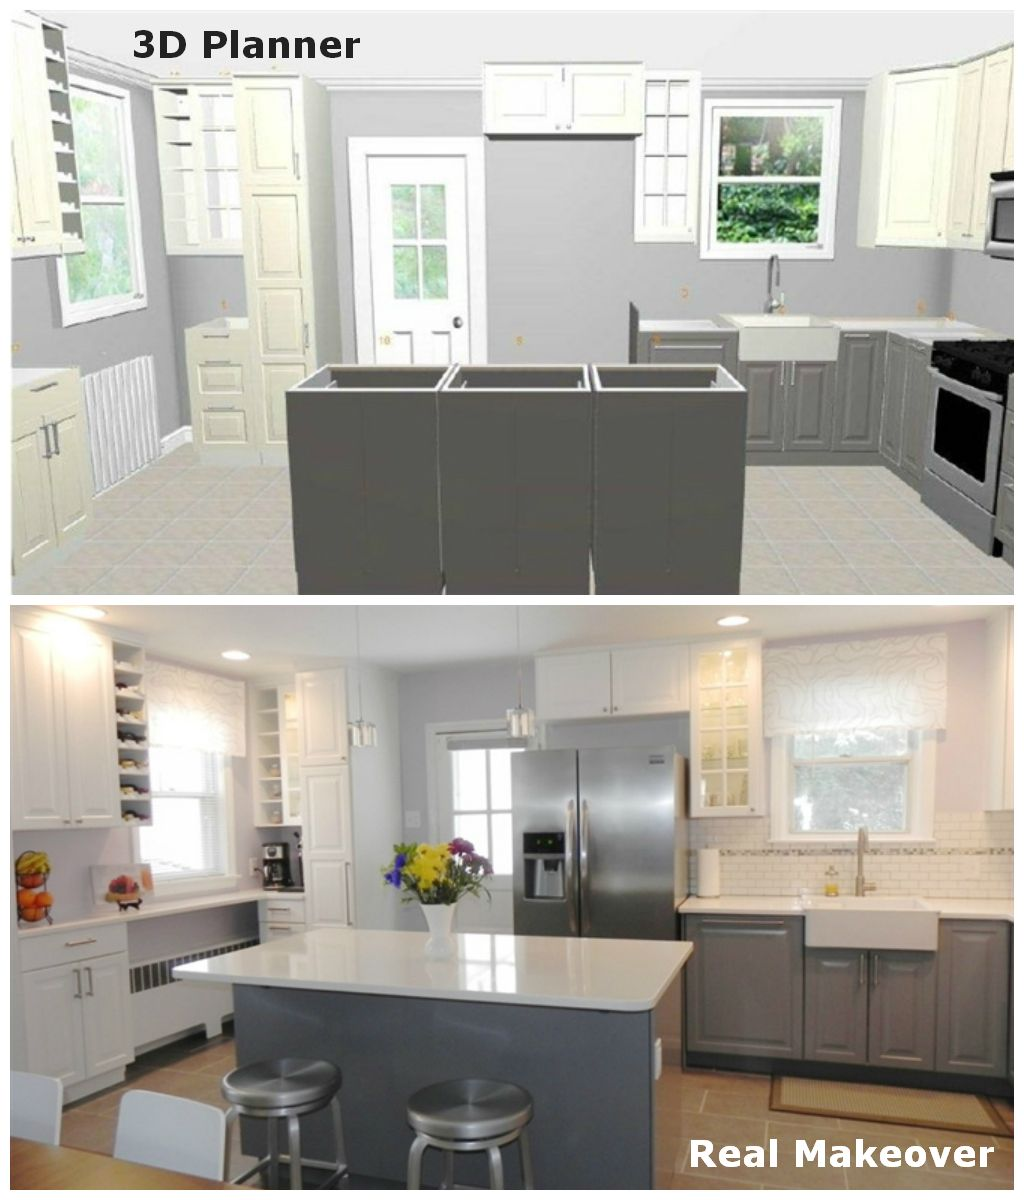 My Real Dream Kitchen - Before & After